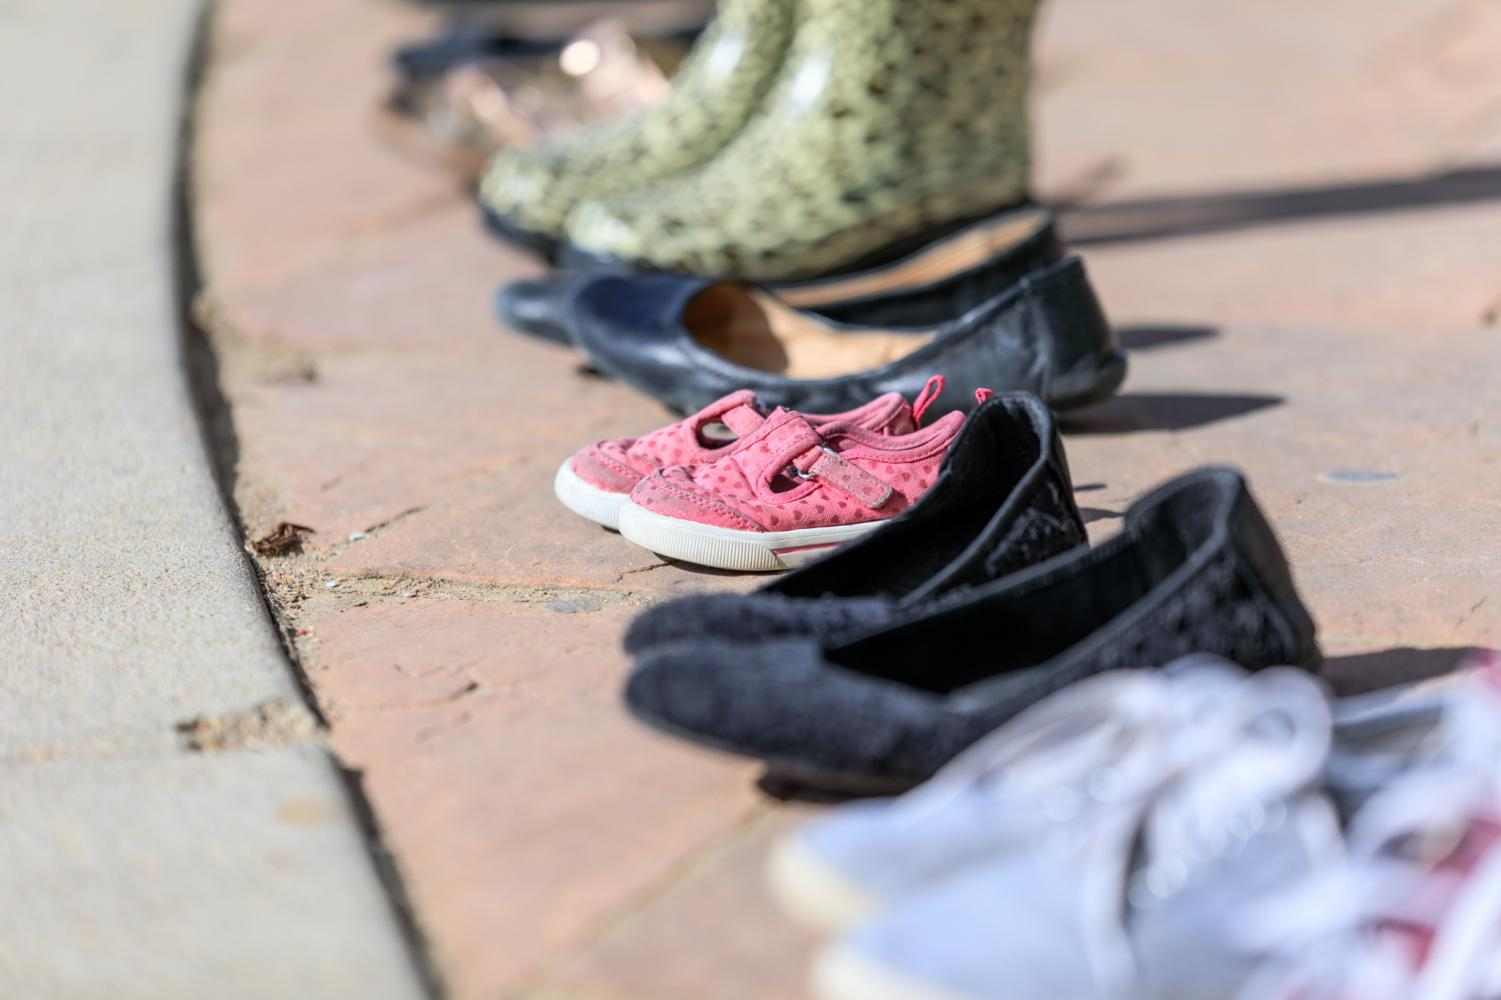 The+pairs+of+shoes+are+symbolic+of+the+7%2C000+shoes+in+Washington+DC+representing+the+7%2C000+children+killed+since+Sandy+Hook.